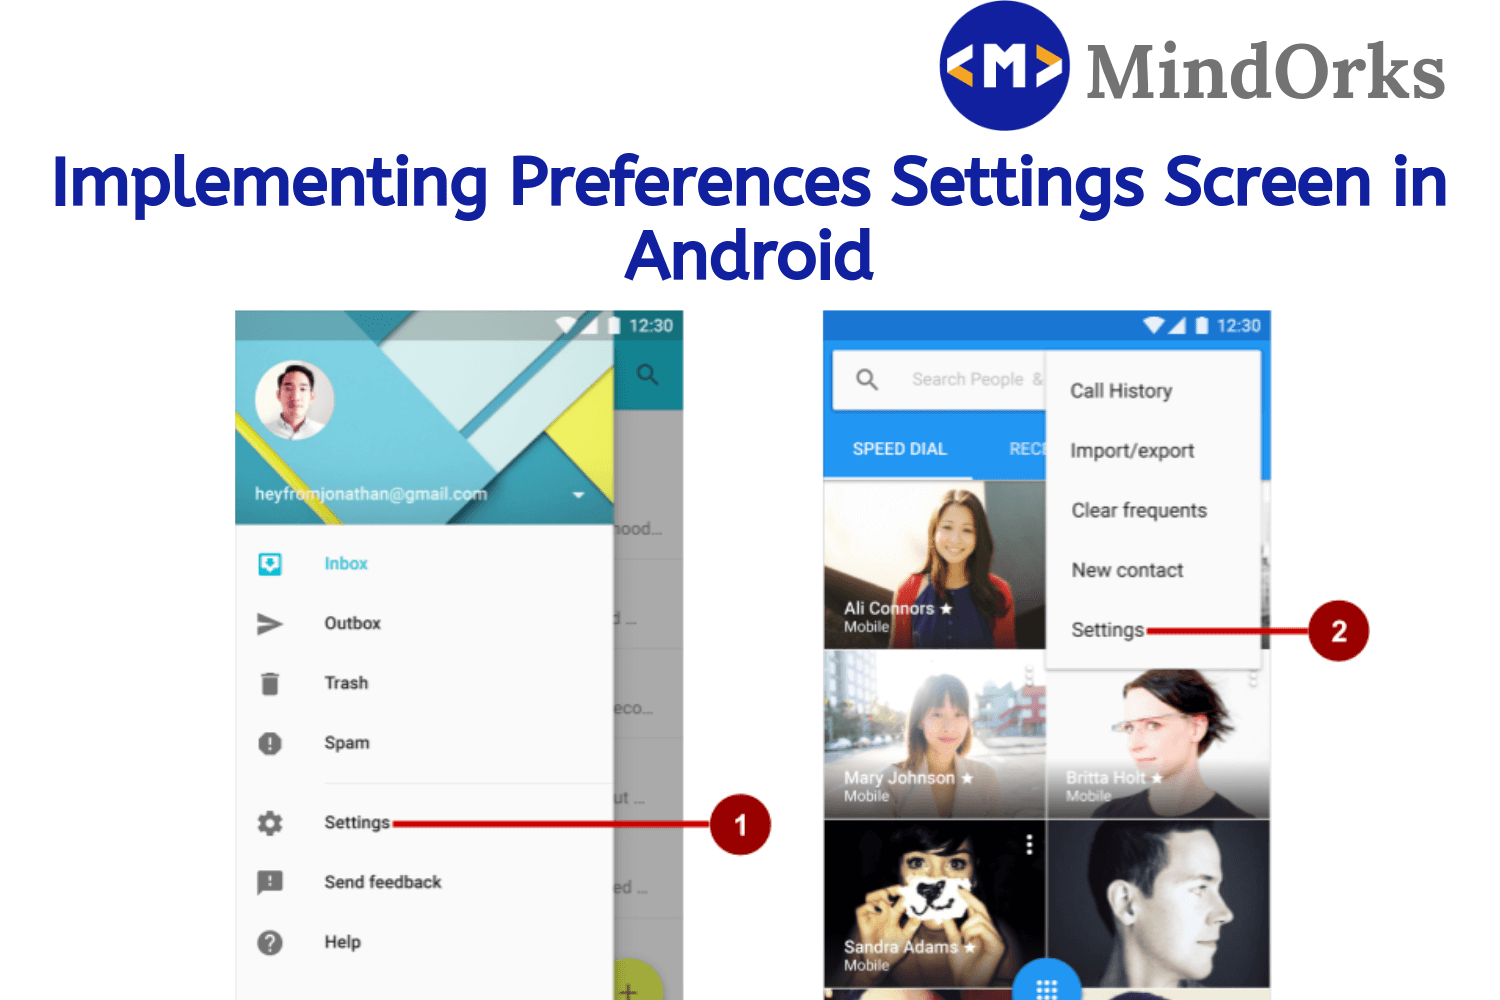 Implementing Preferences Settings Screen in Android